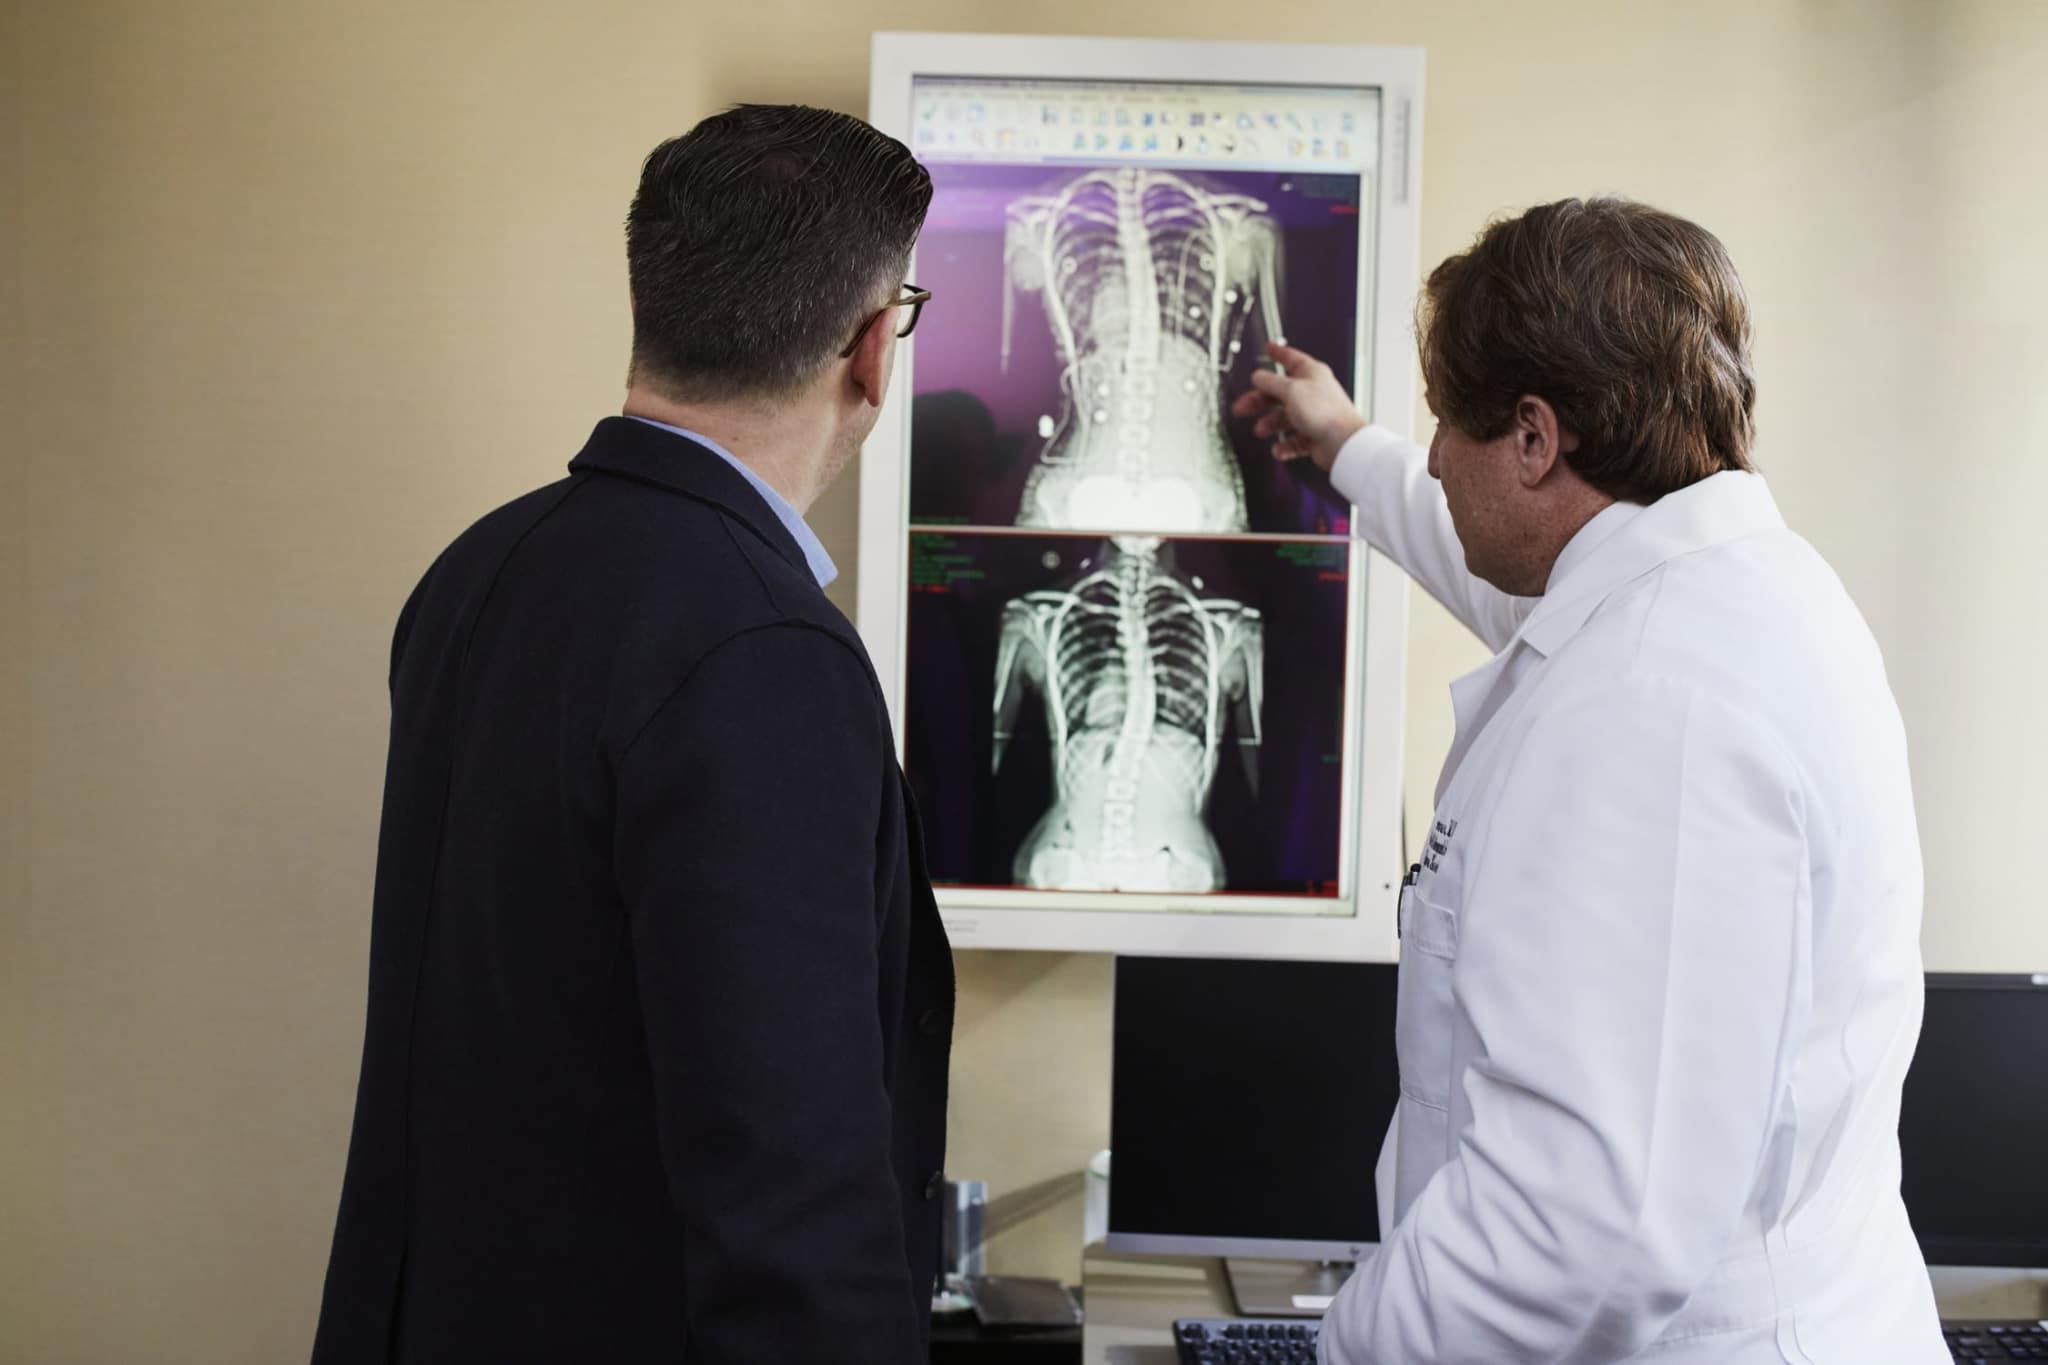 Professionals looking at X-rays